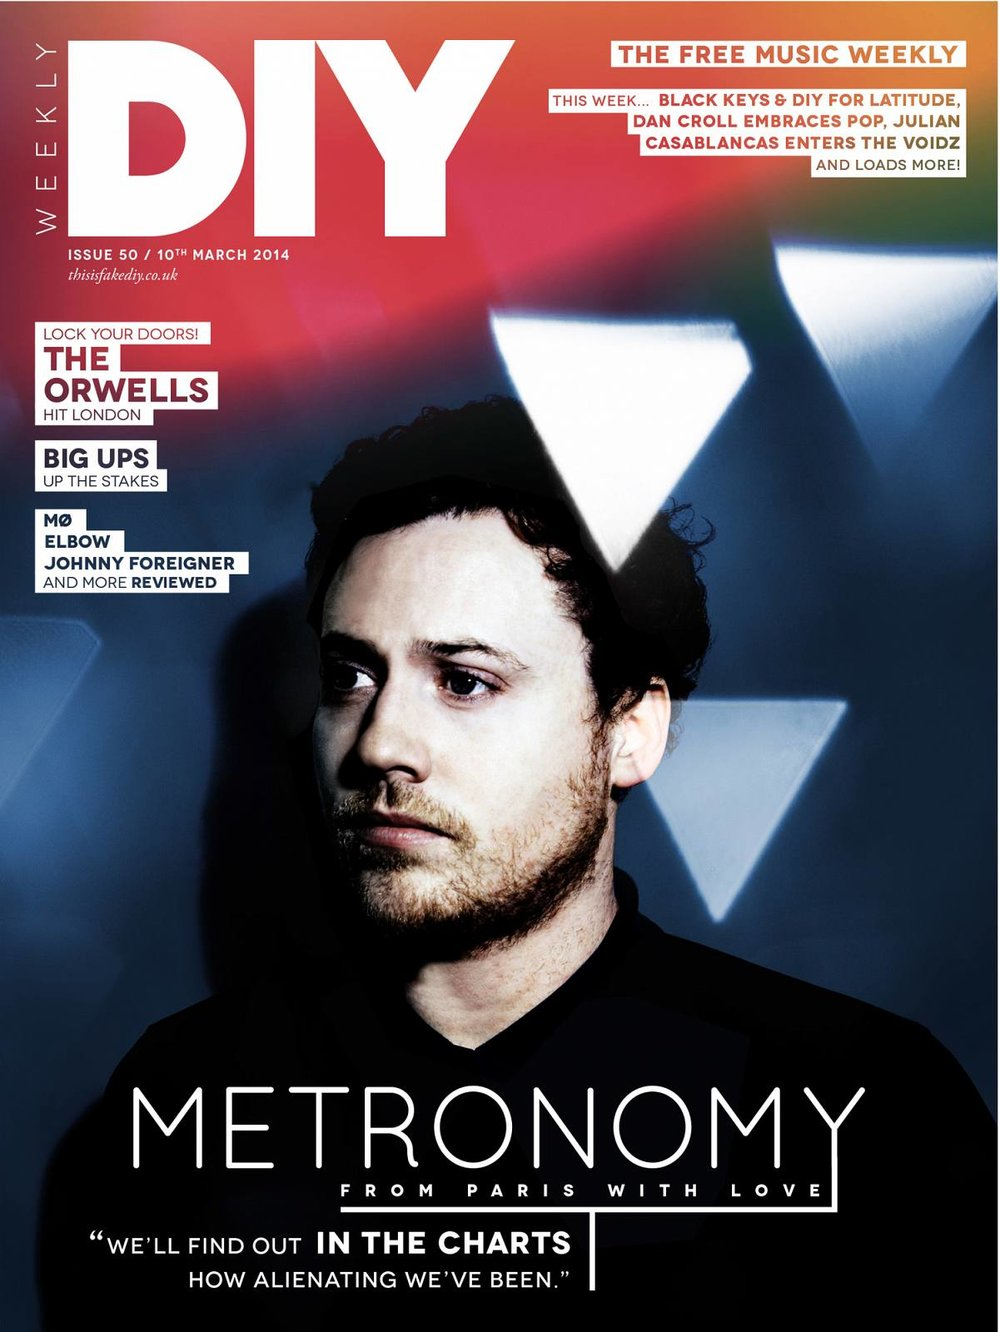 DIY Weekly, 10th March 2014